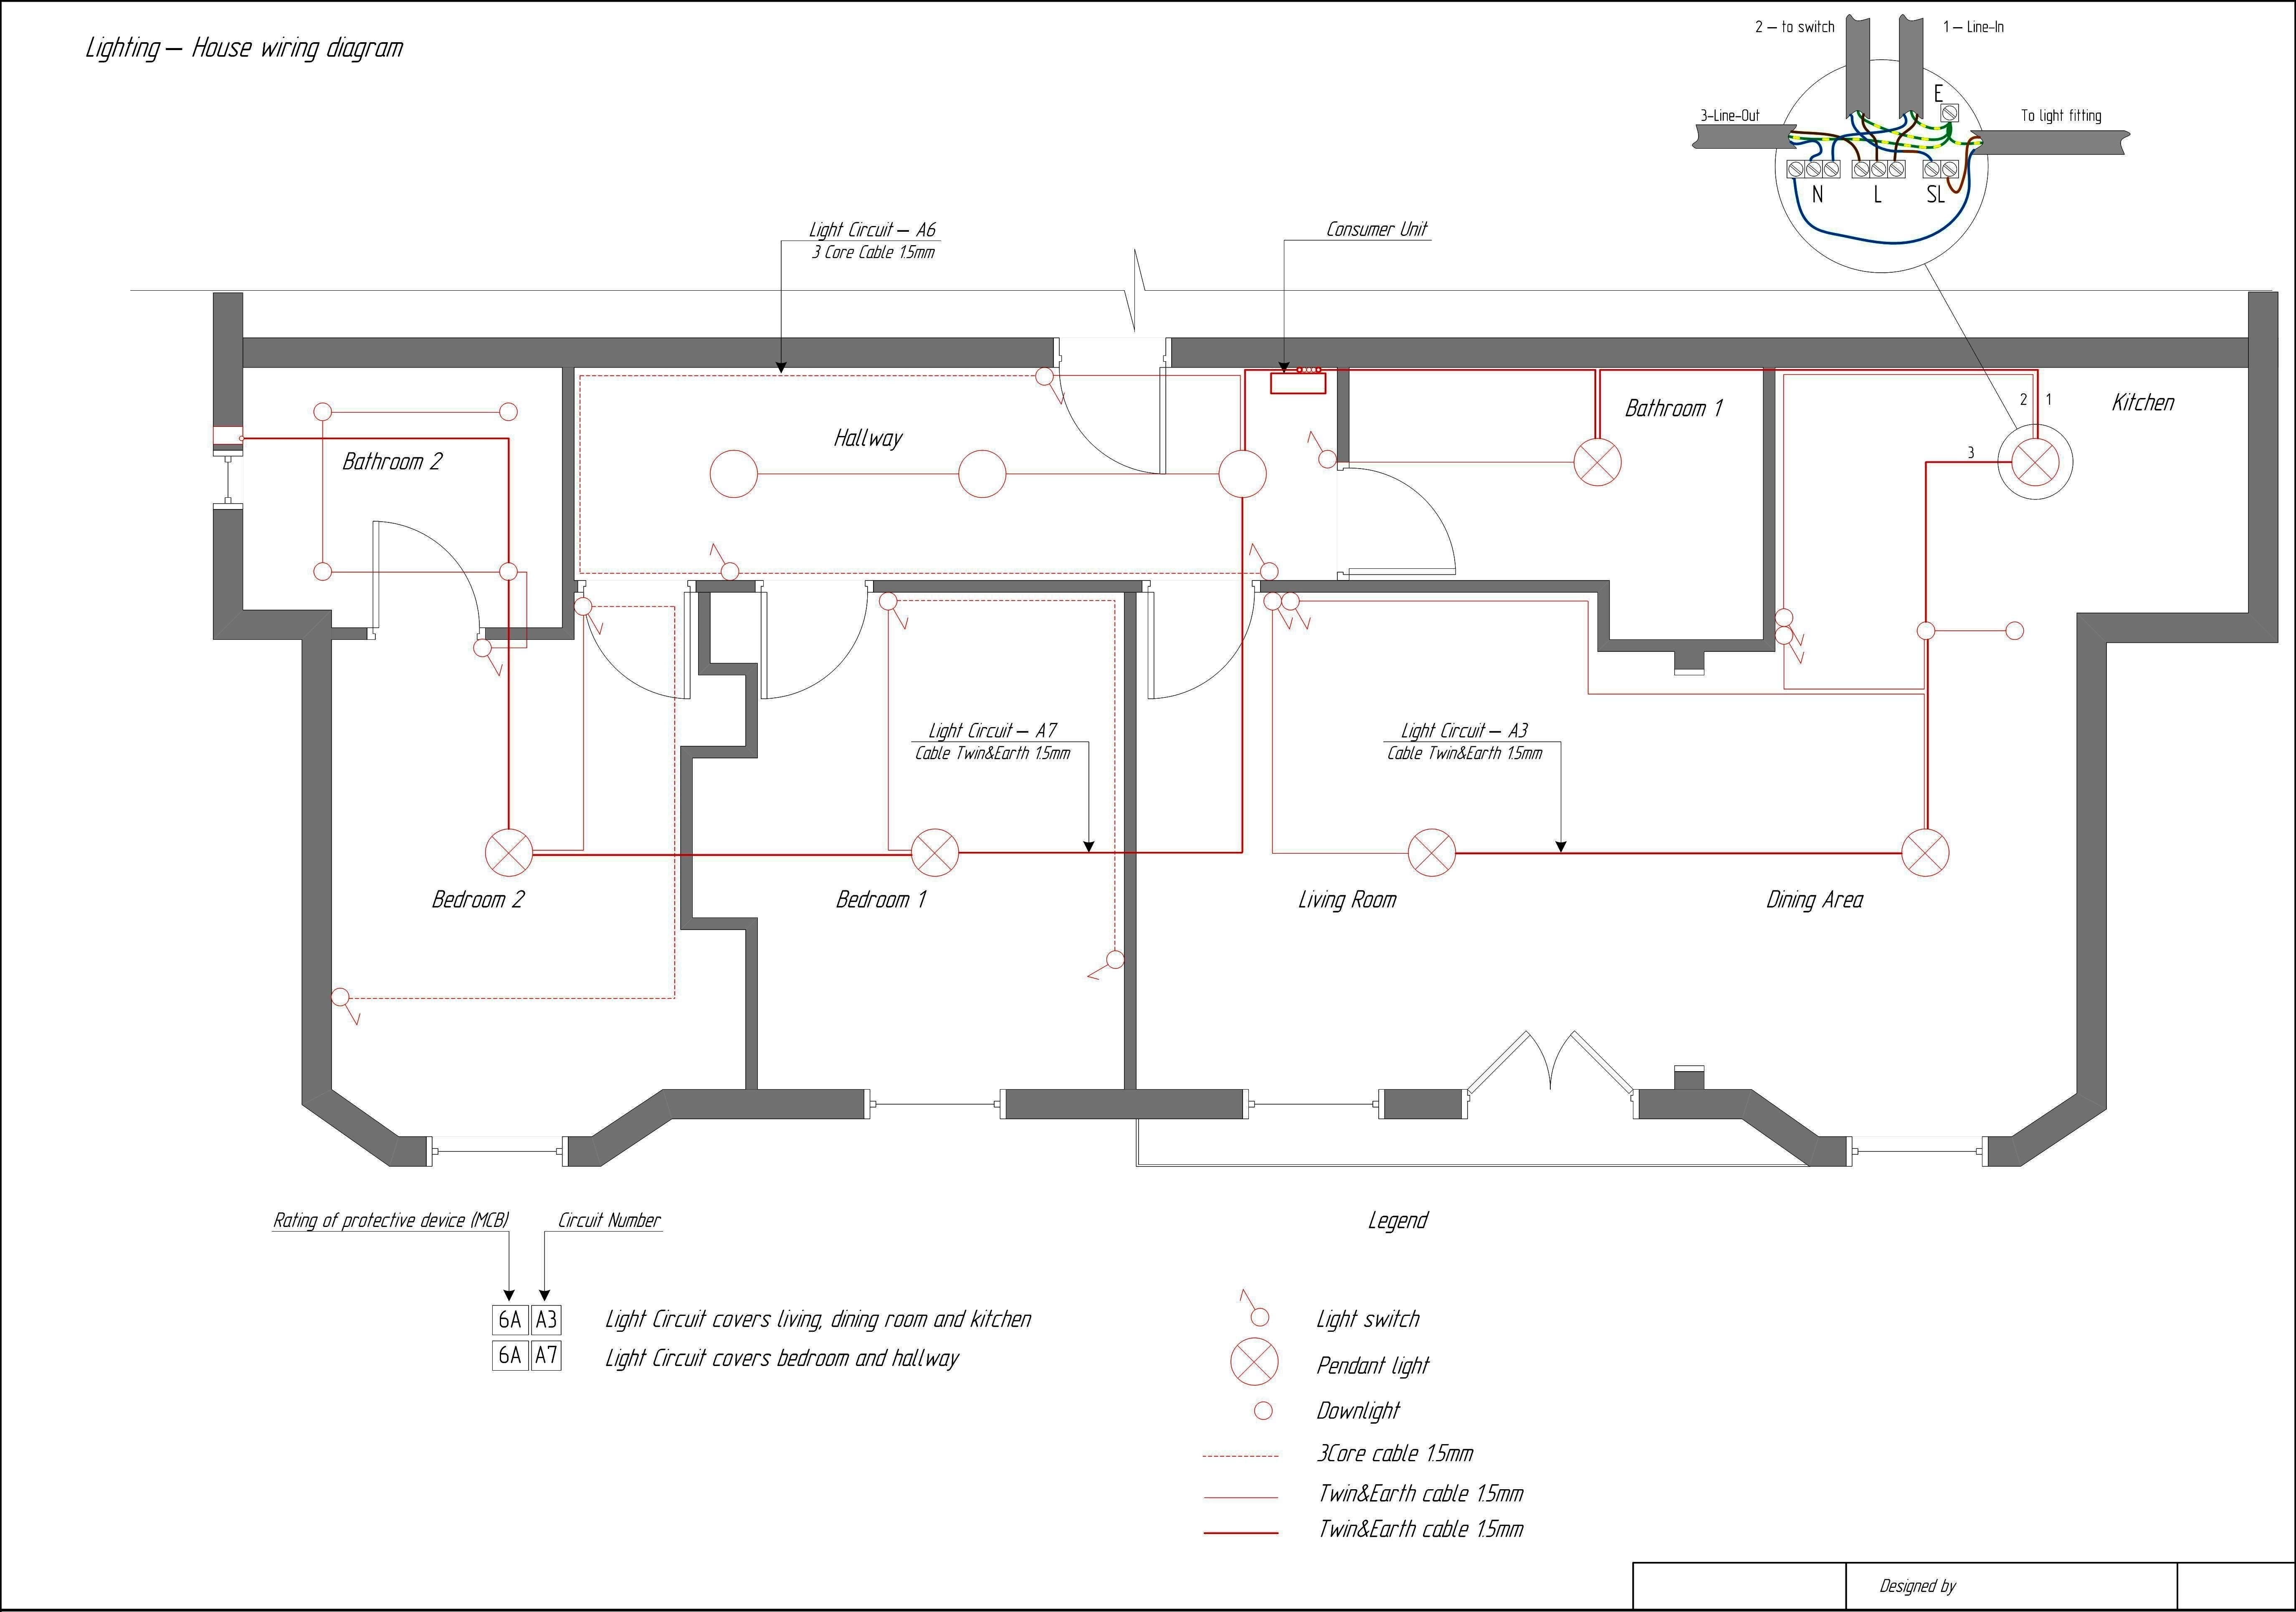 house wiring diagram Download-Wiring Diagram For House Wiring Save House Wiring Diagram Electrical Floor Plan 2004 2010 Bmw X3 E83 3 0d 2-p